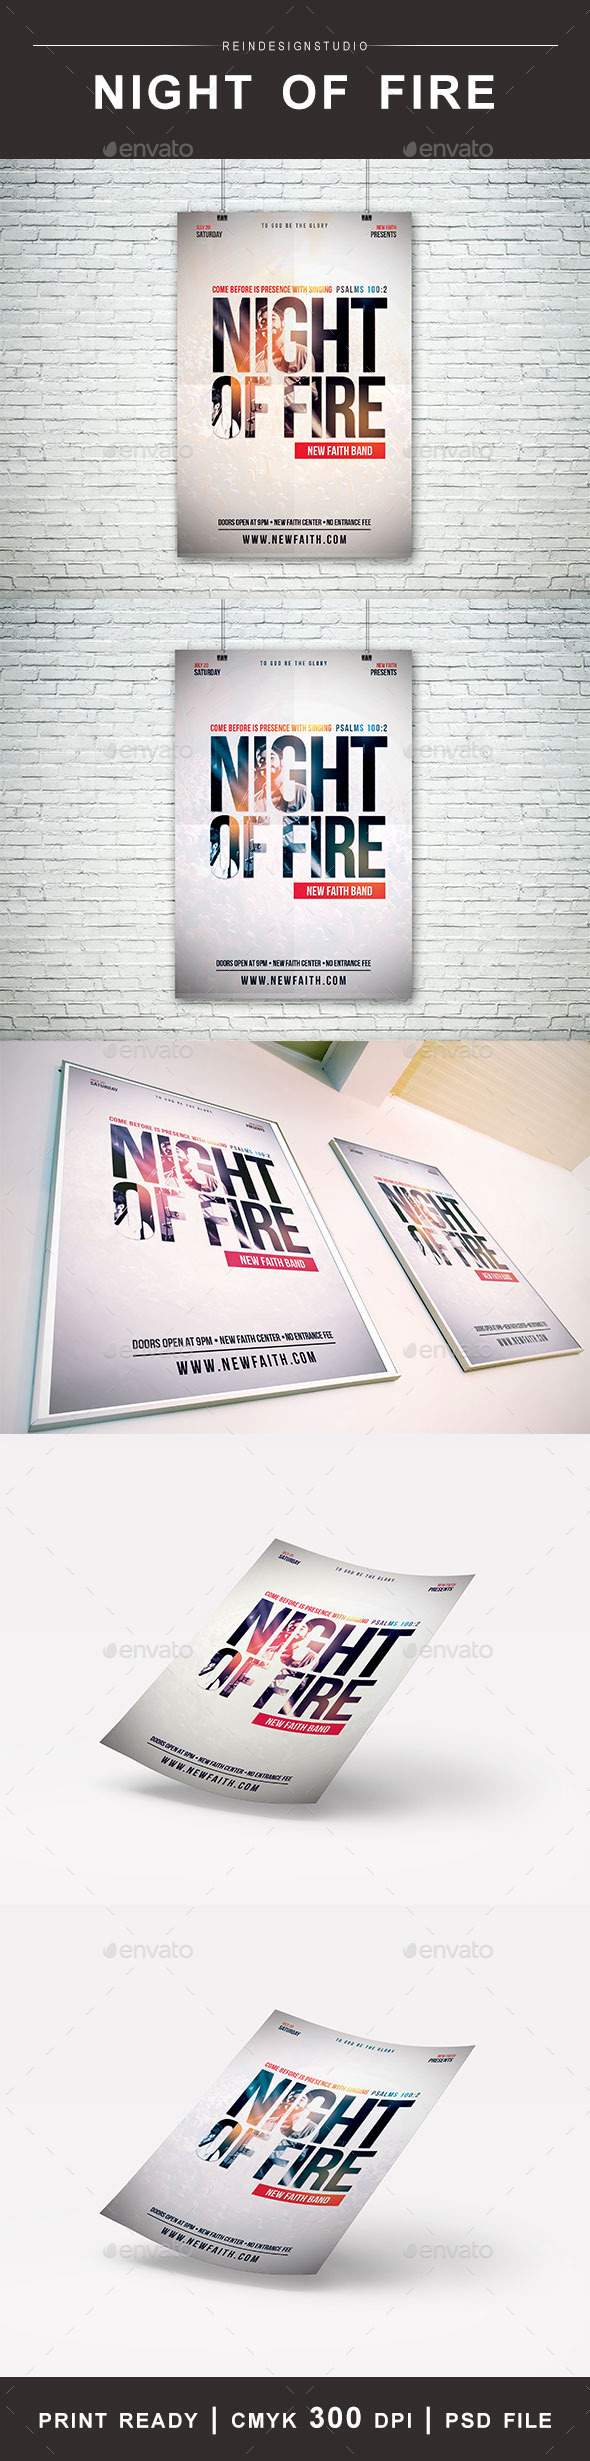 GraphicRiver Night of Fire Church Flyer 11887236